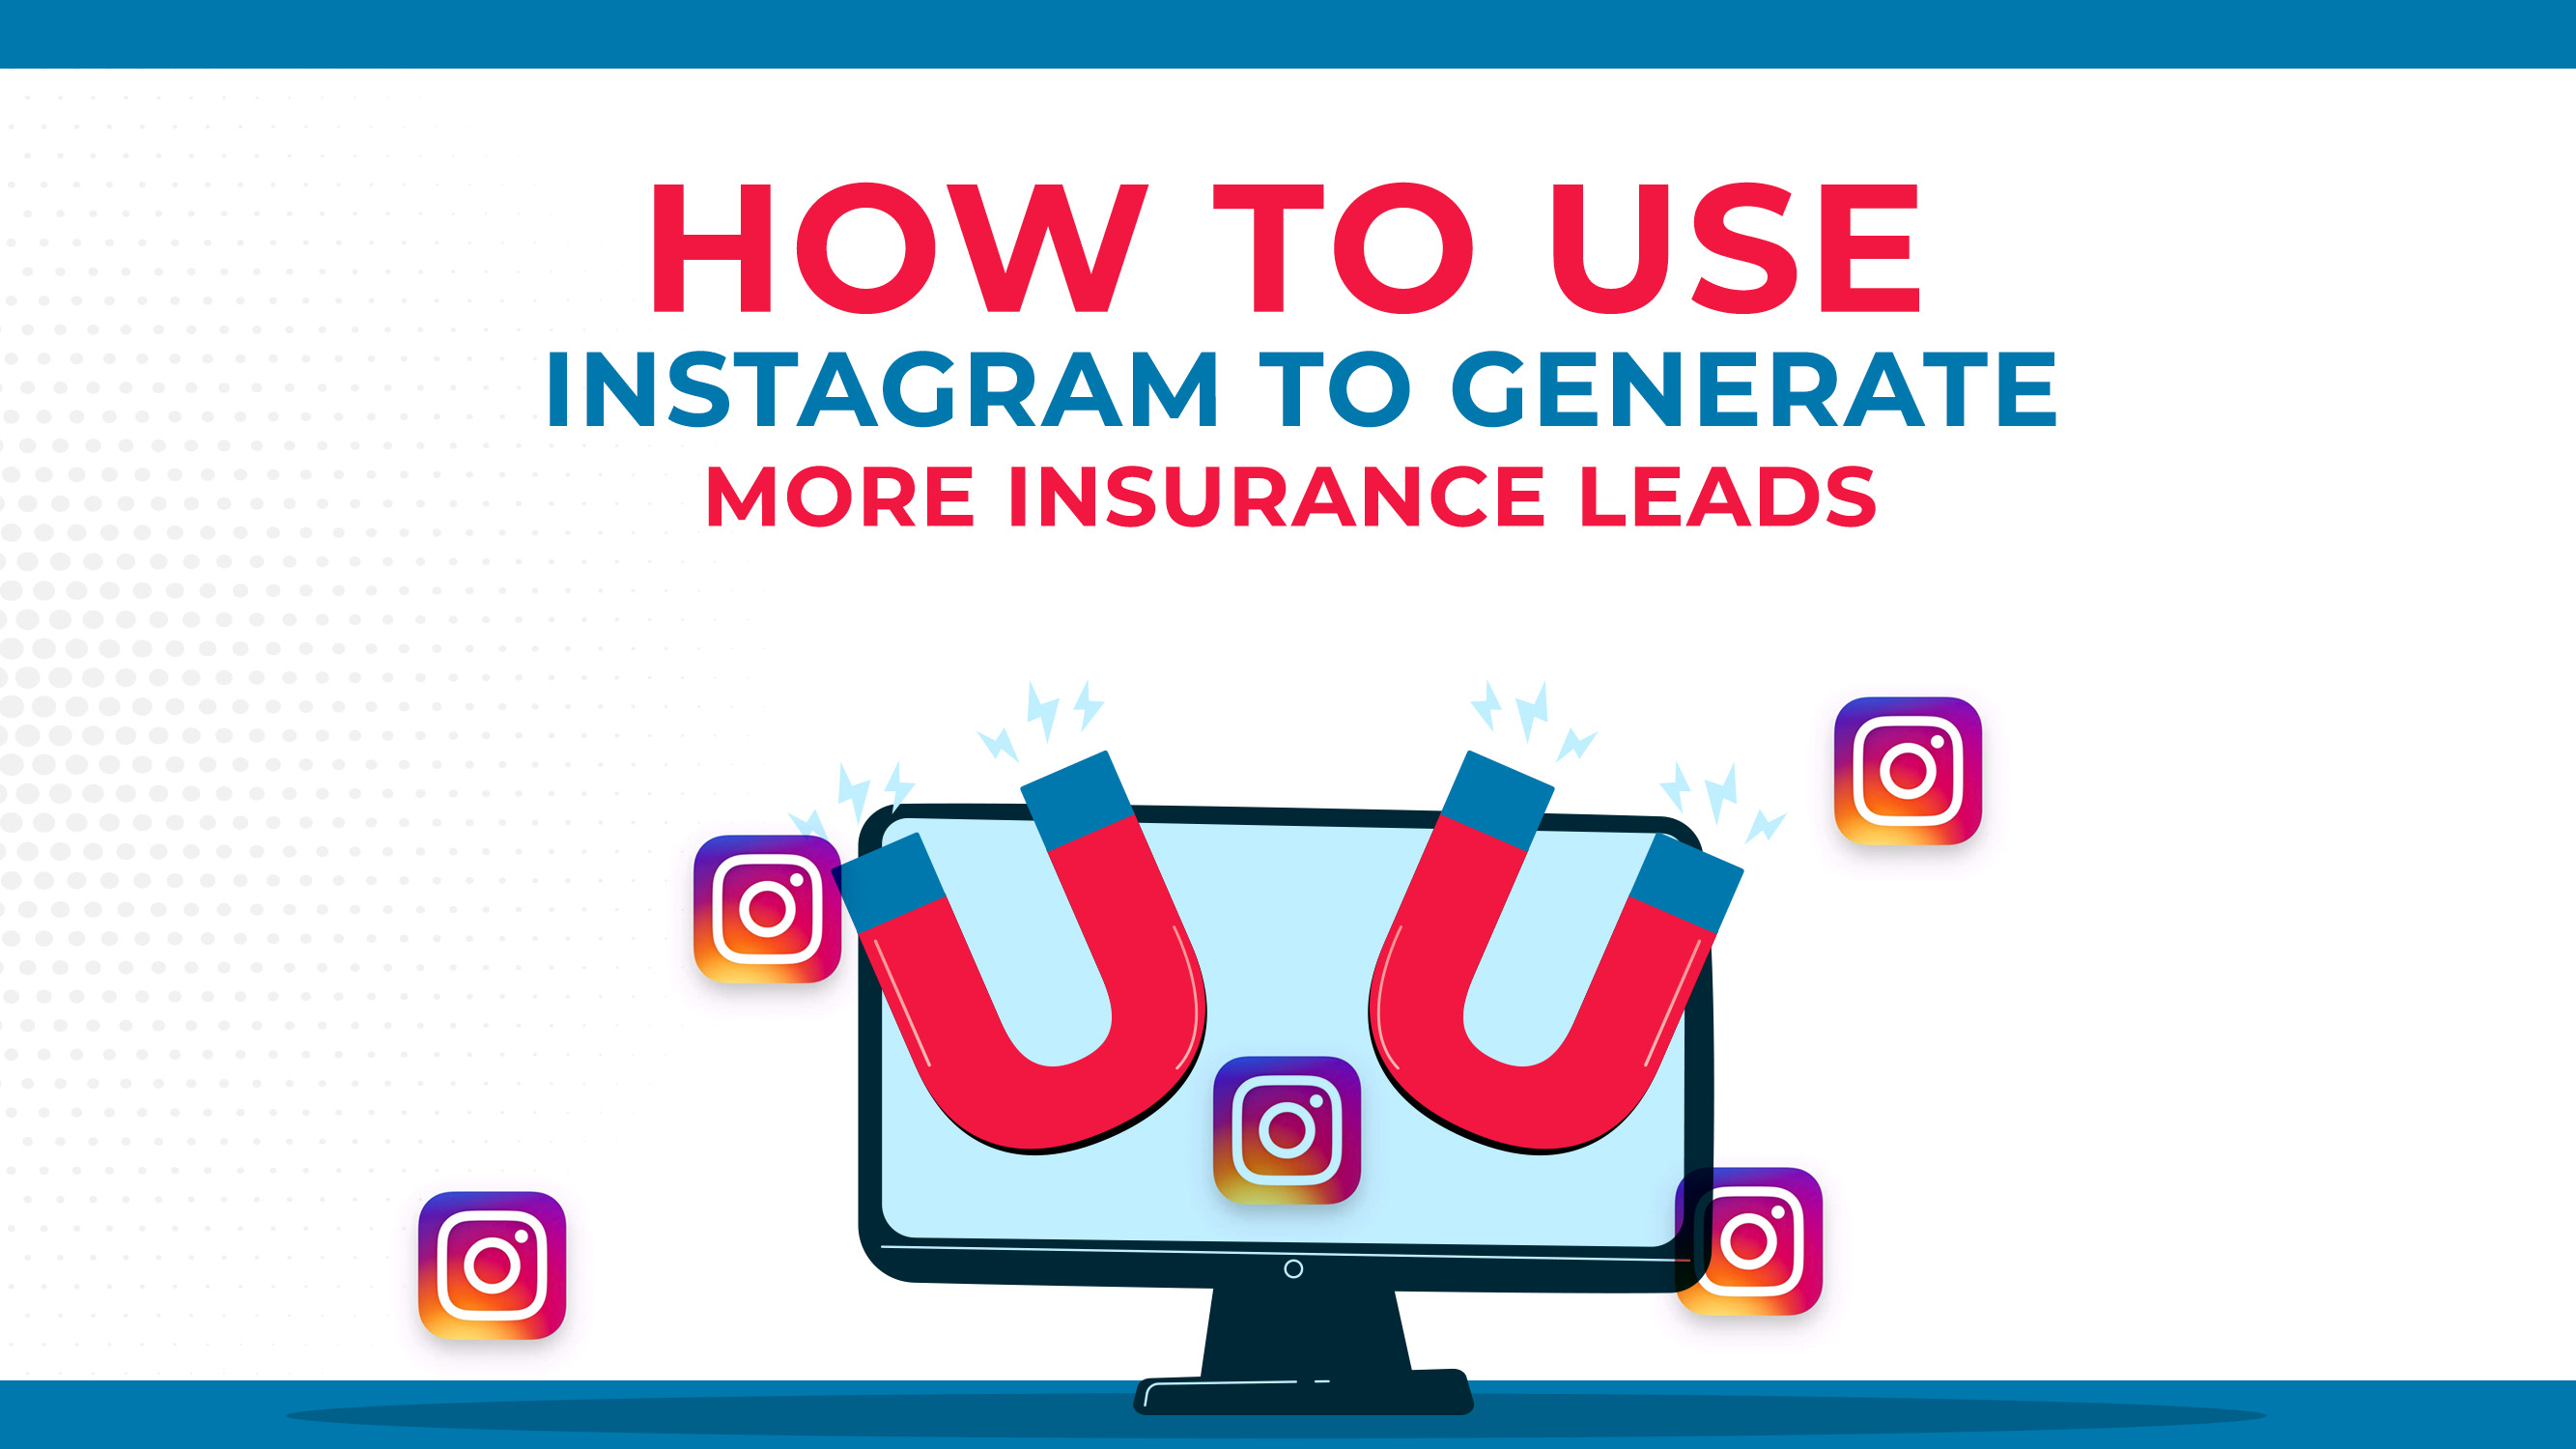 How To Use Instagram To Generate More Insurance Leads